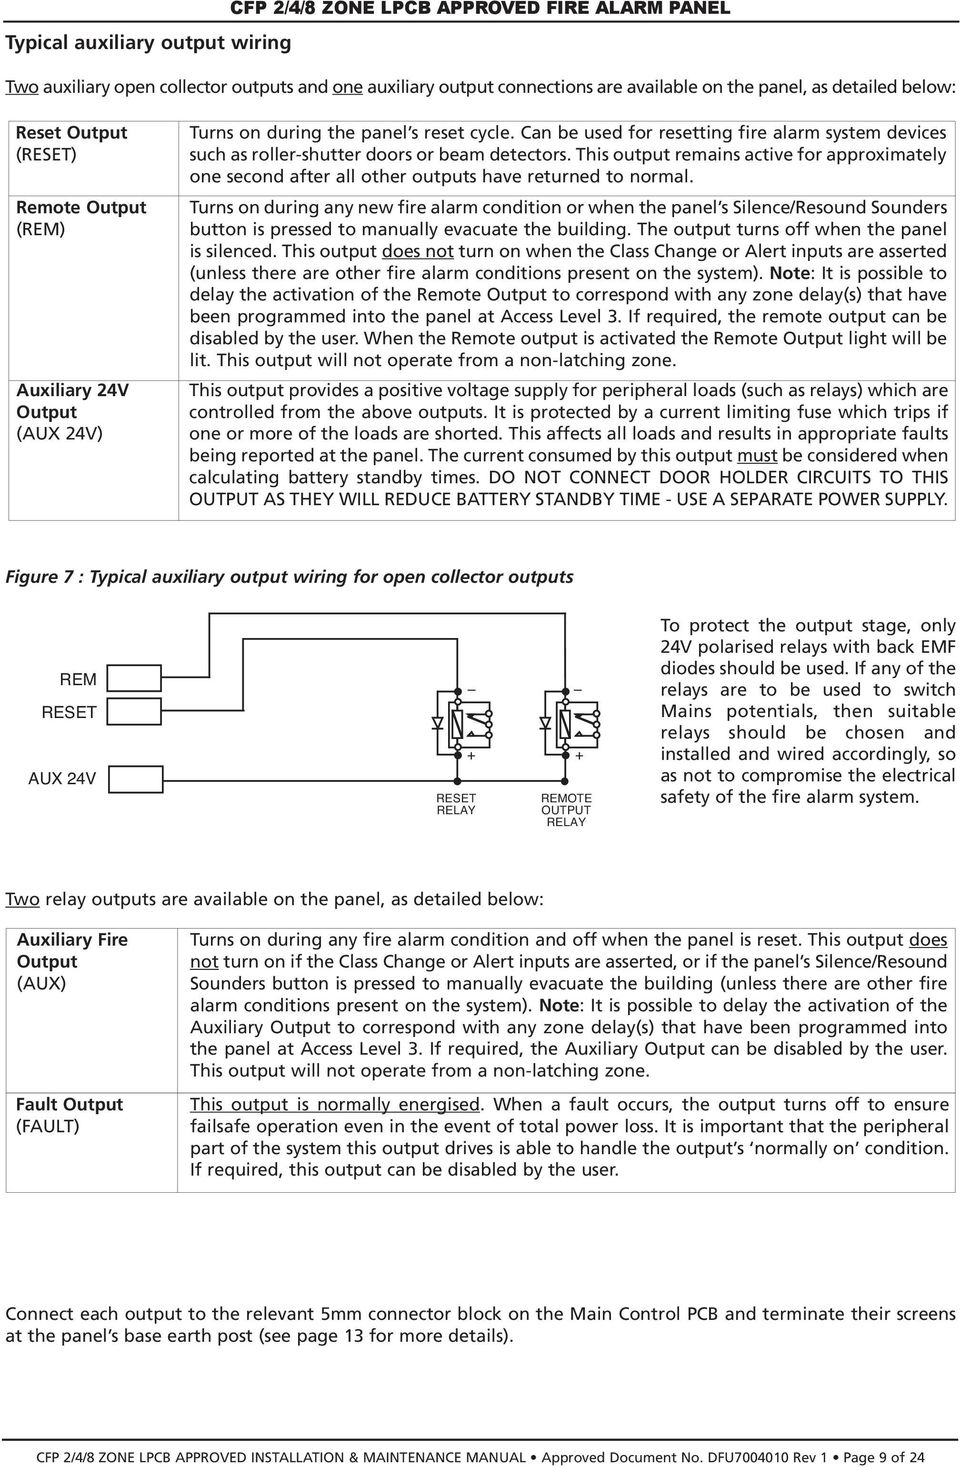 medium resolution of figure 719 typical fire alarm system schematic diagram wiring figure 719 typical fire alarm system schematic diagram